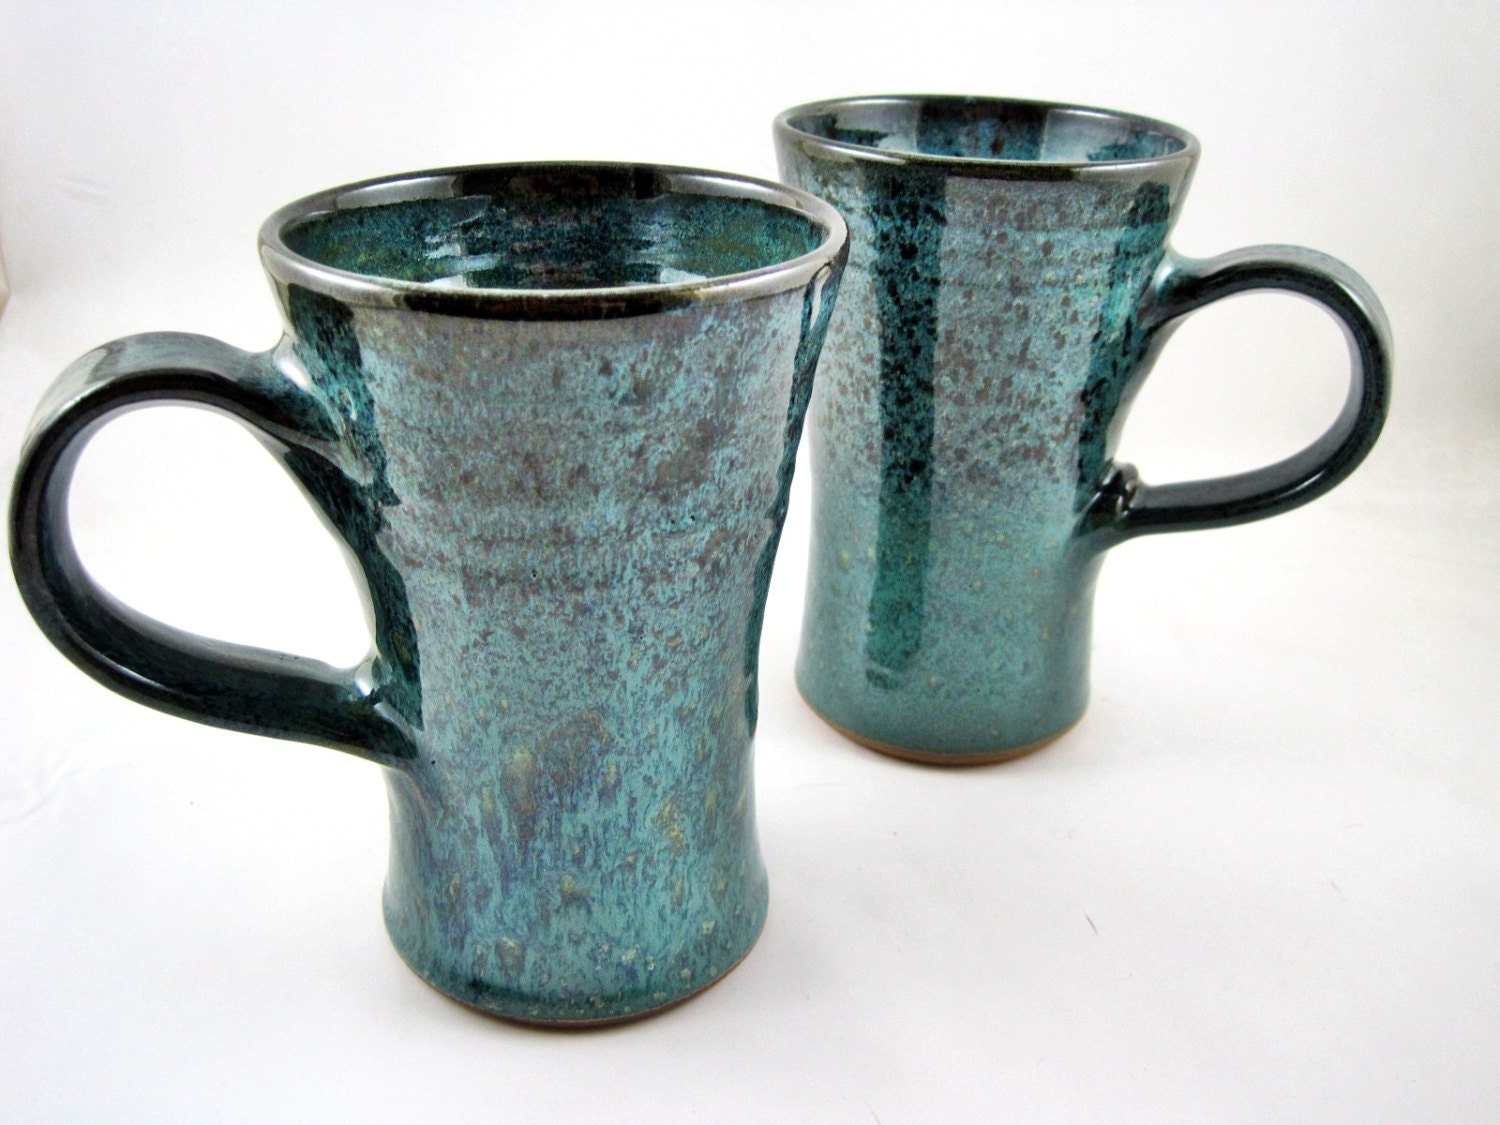 Handmade mug pottery coffee mug ceramic mug by Unique coffee cups mugs